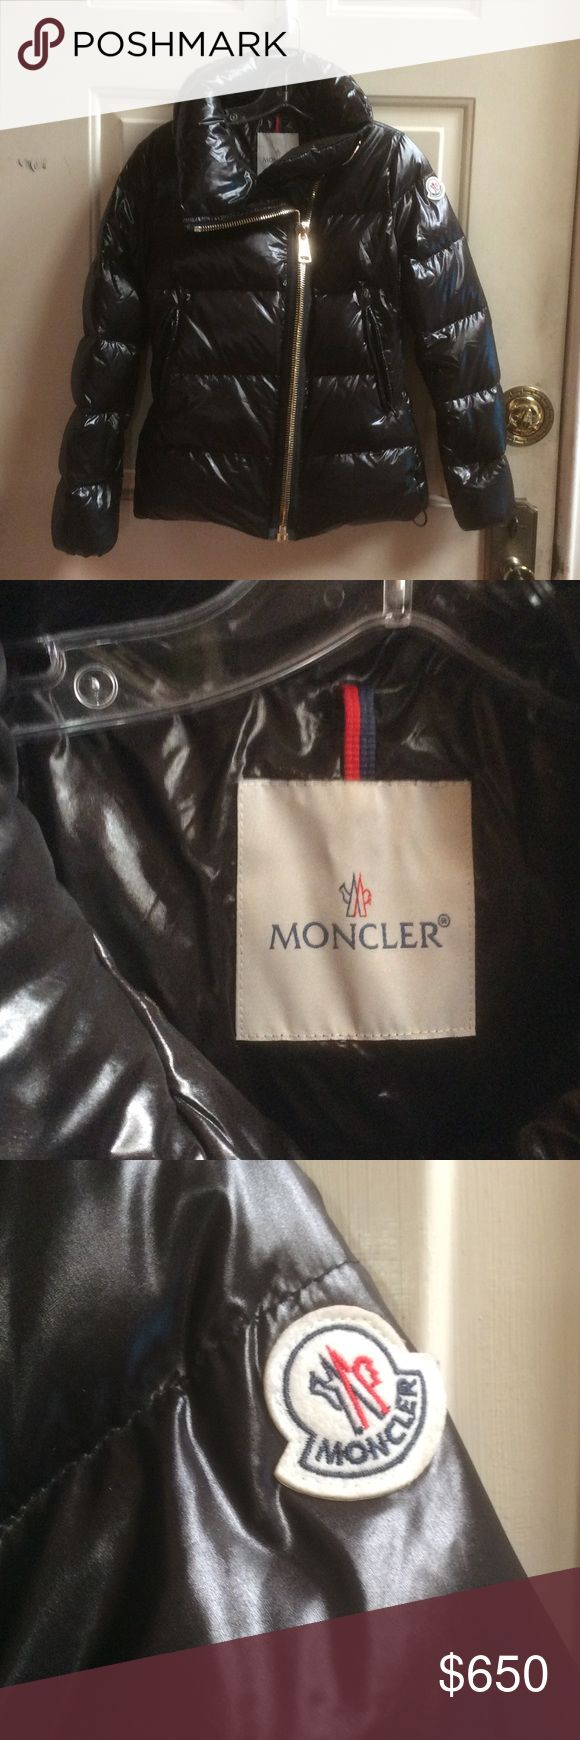 Moncler  women's black down's jack SOLD💕💕💕💕💕 Authentic, made in Romania. Two side pockets. Front zipper closure. Worn gently Moncler Jackets & Coats Puffers